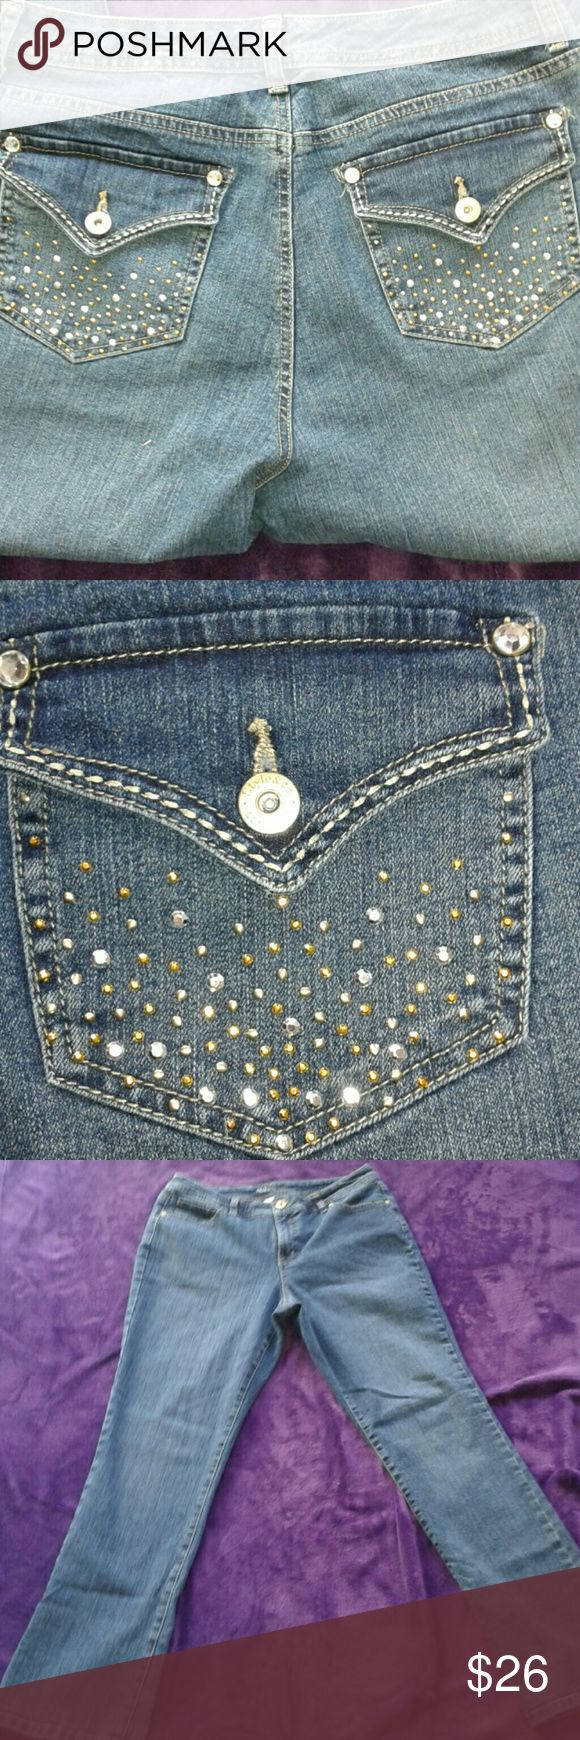 Curvy Tummy Control Style & Co Rhinestone Jeans These jeans are from Style & Co.  They are a size 12 with the Curvy Tummy Control Modern Boot style with gorgeous rhinestone embellishments on both back pockets with both silver and gold emblishments and crystal facets.  They are in a medium blue Jean wash, bottom of Jean hems have no fraying, jeans are in great condition from a smoke free home.  I ship fast, 5 star seller.  Inseam 32.5 inches Size 12   Happy Poshing loves! Style & Co Jeans…